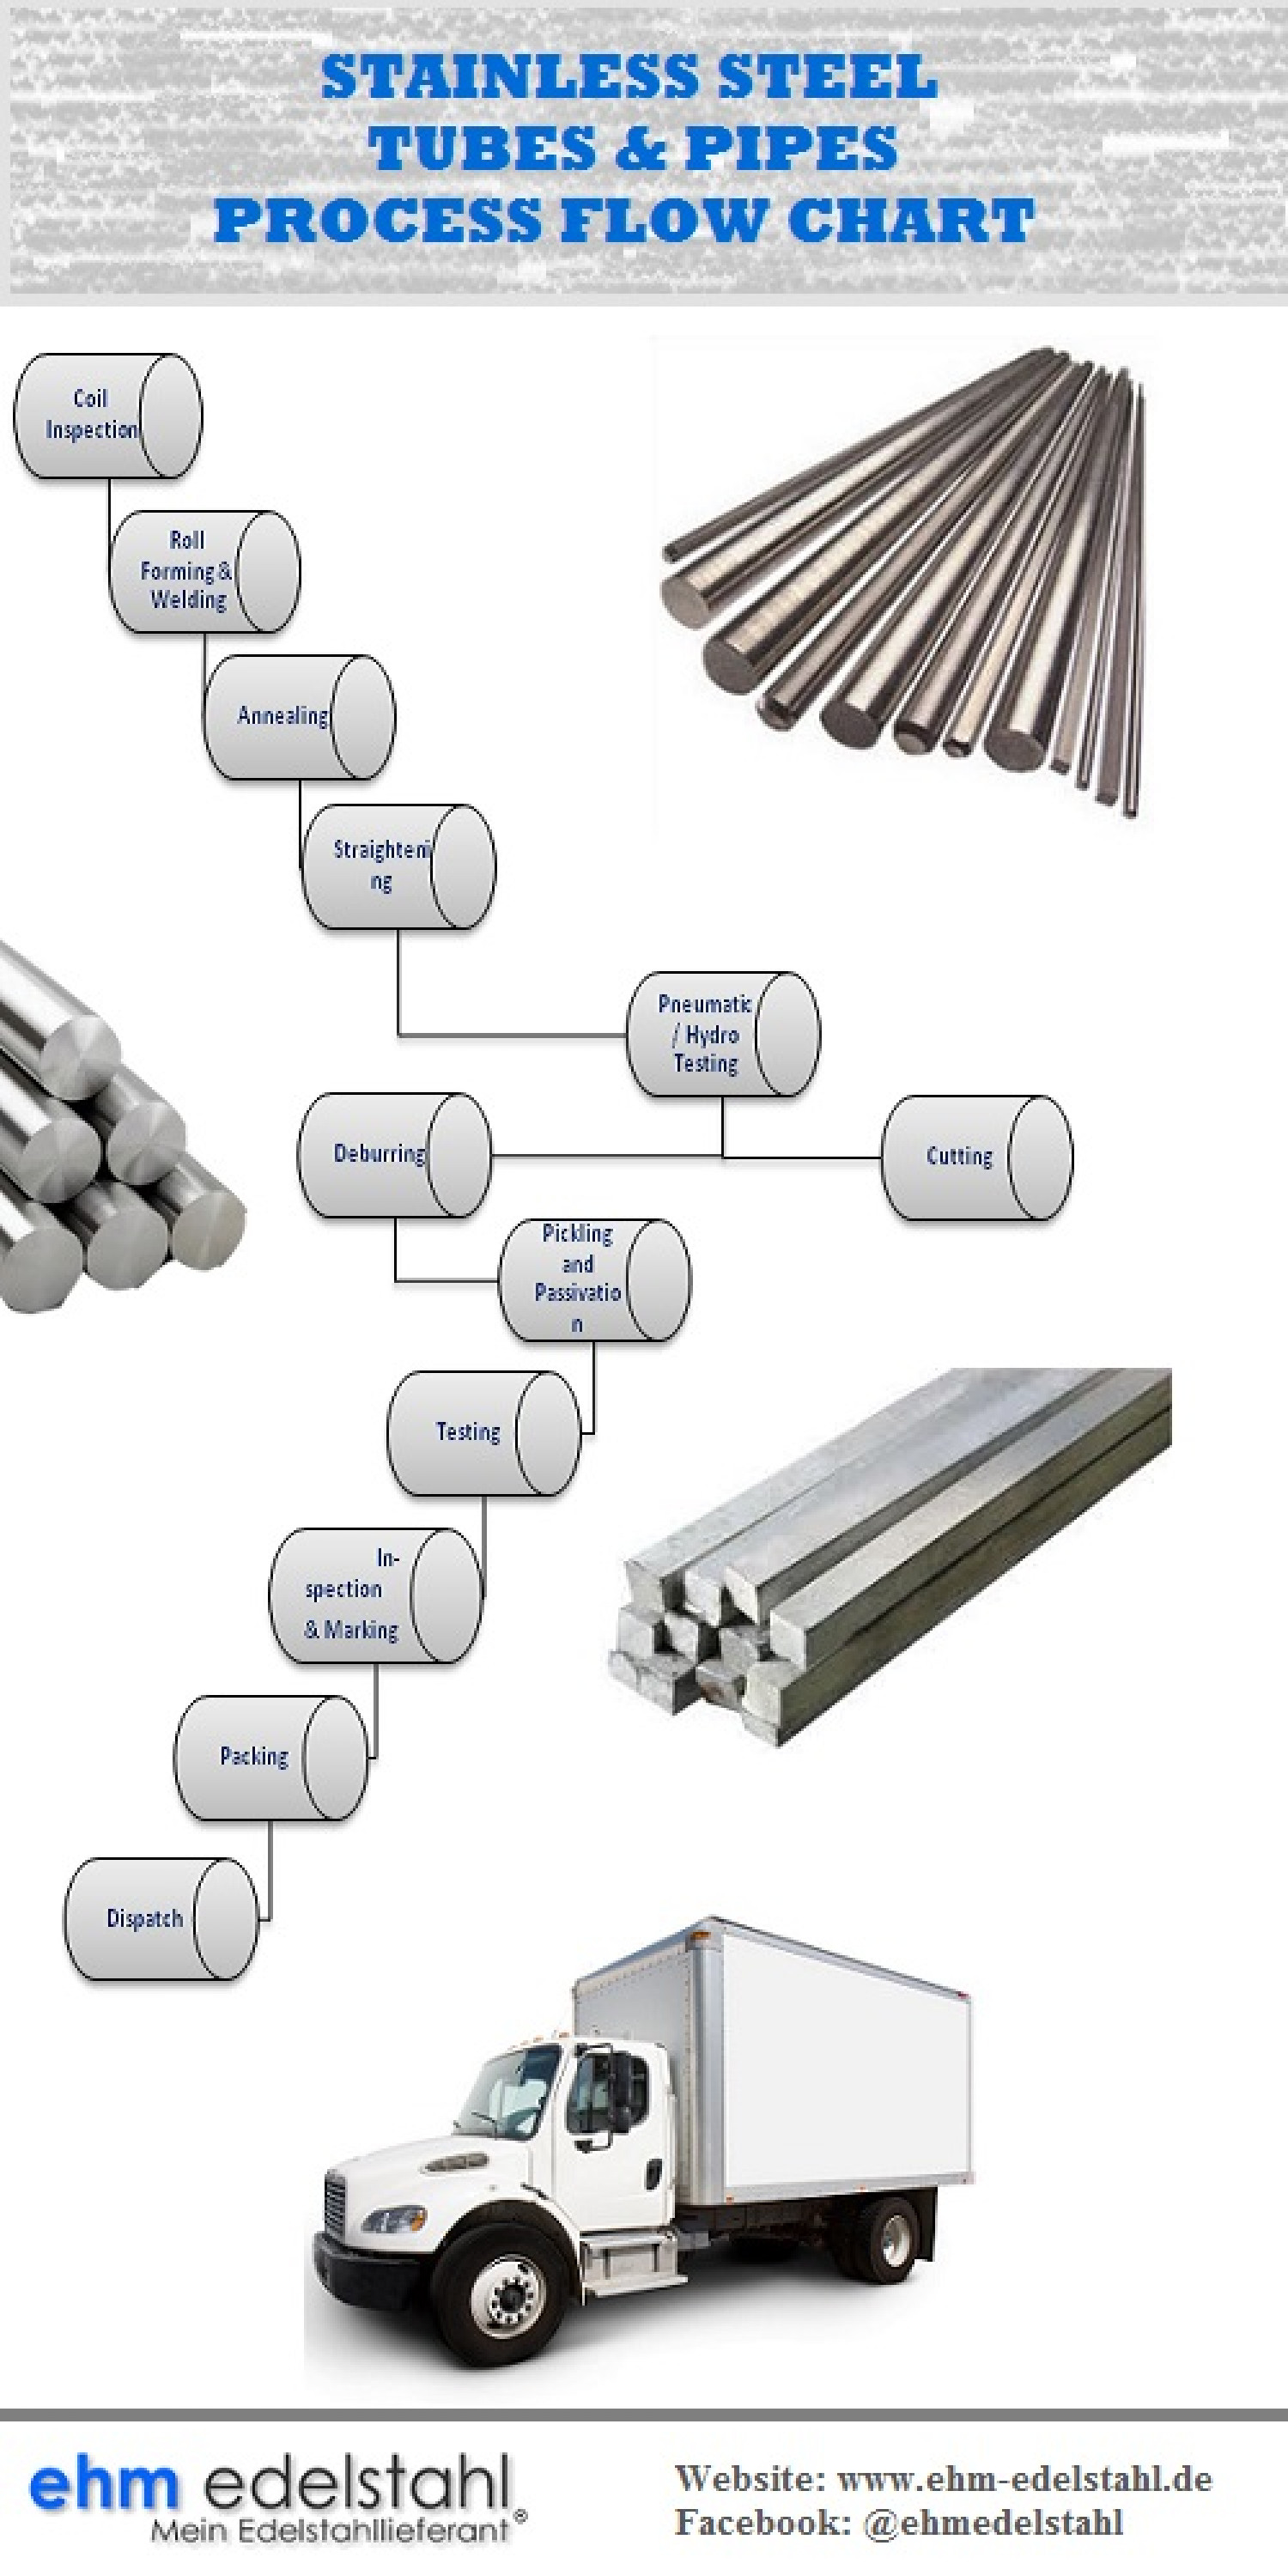 Process flow chart of stainless steel tubes pipes visual process flow chart of stainless steel tubes pipes infographic nvjuhfo Choice Image